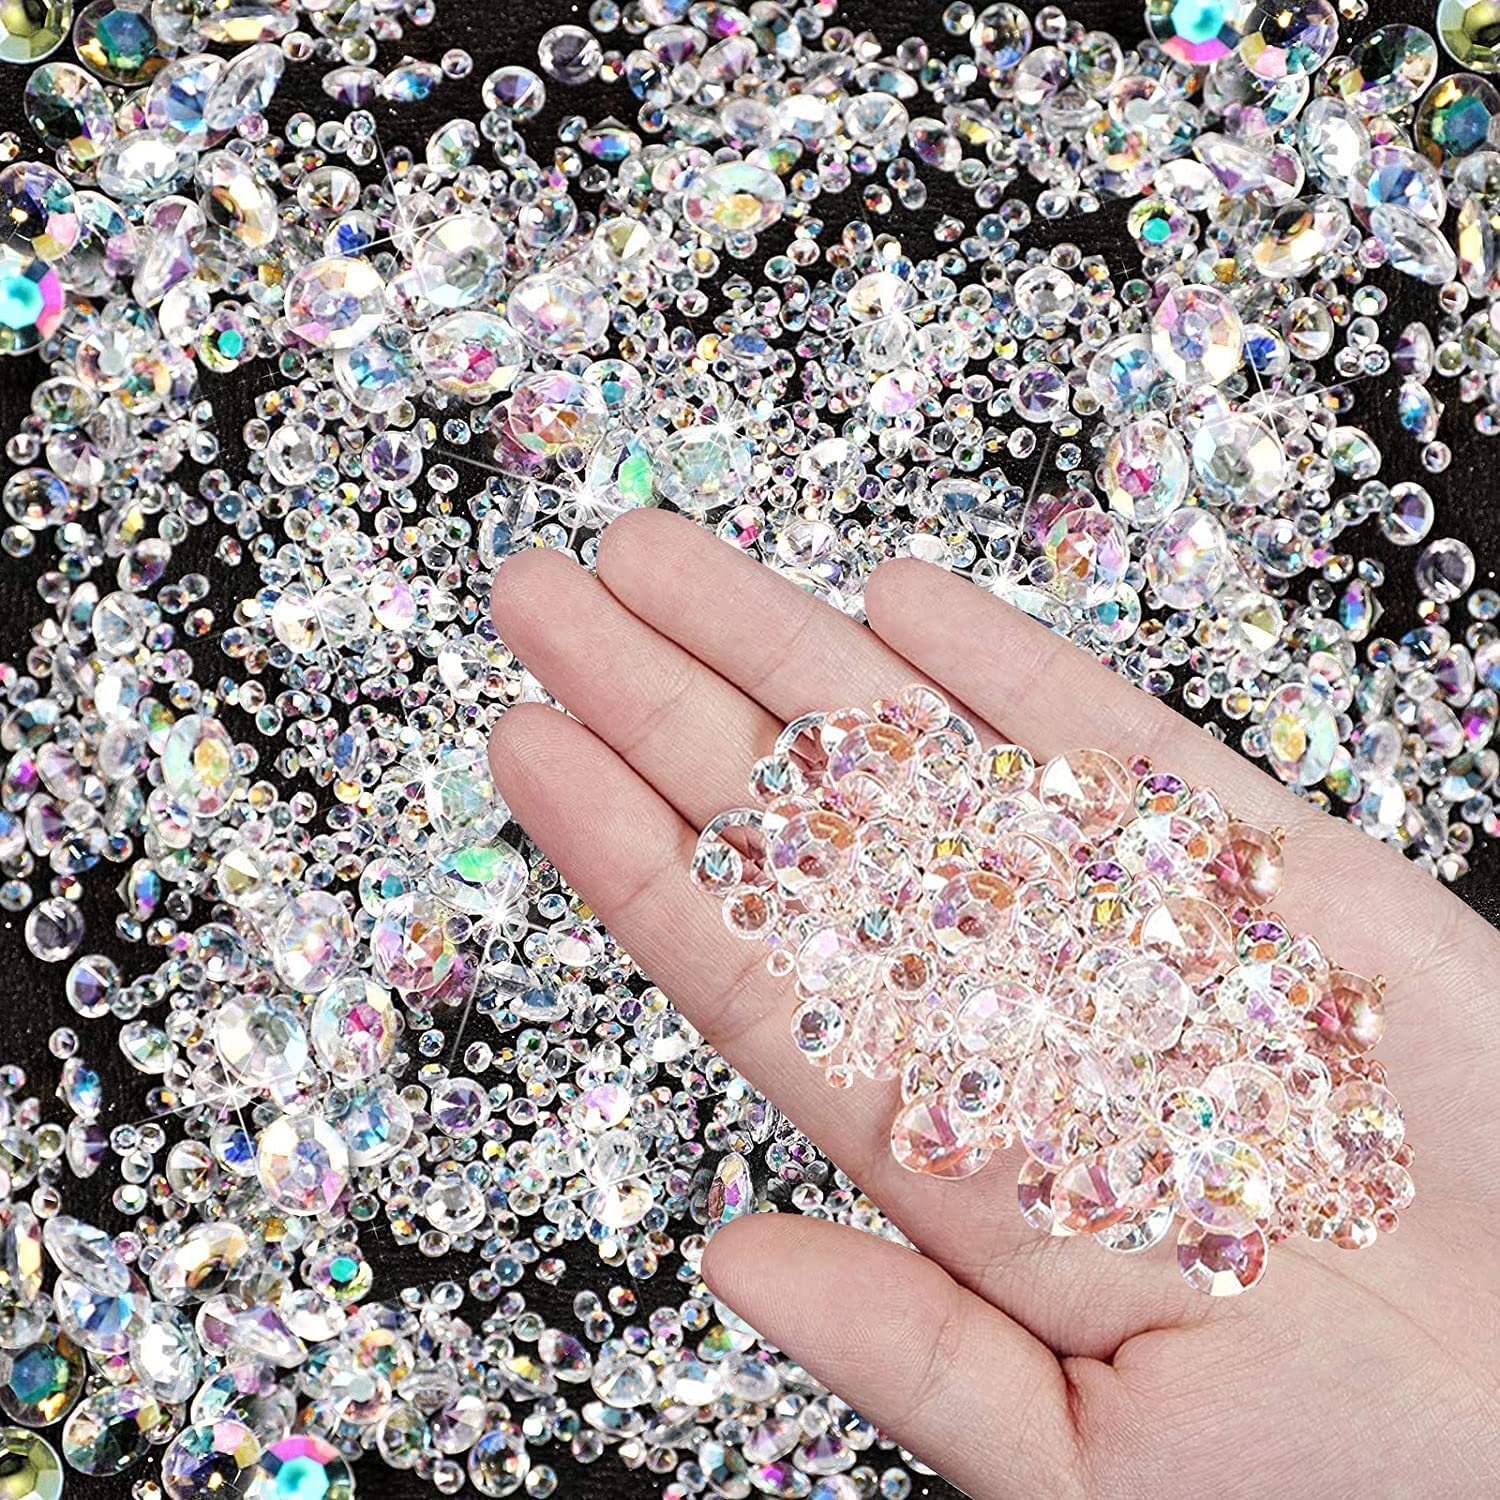 Favoby 4000 Pcs Bling Diamond Scatter Acrylic Table Max 80% Brand new OFF Gem Wedding